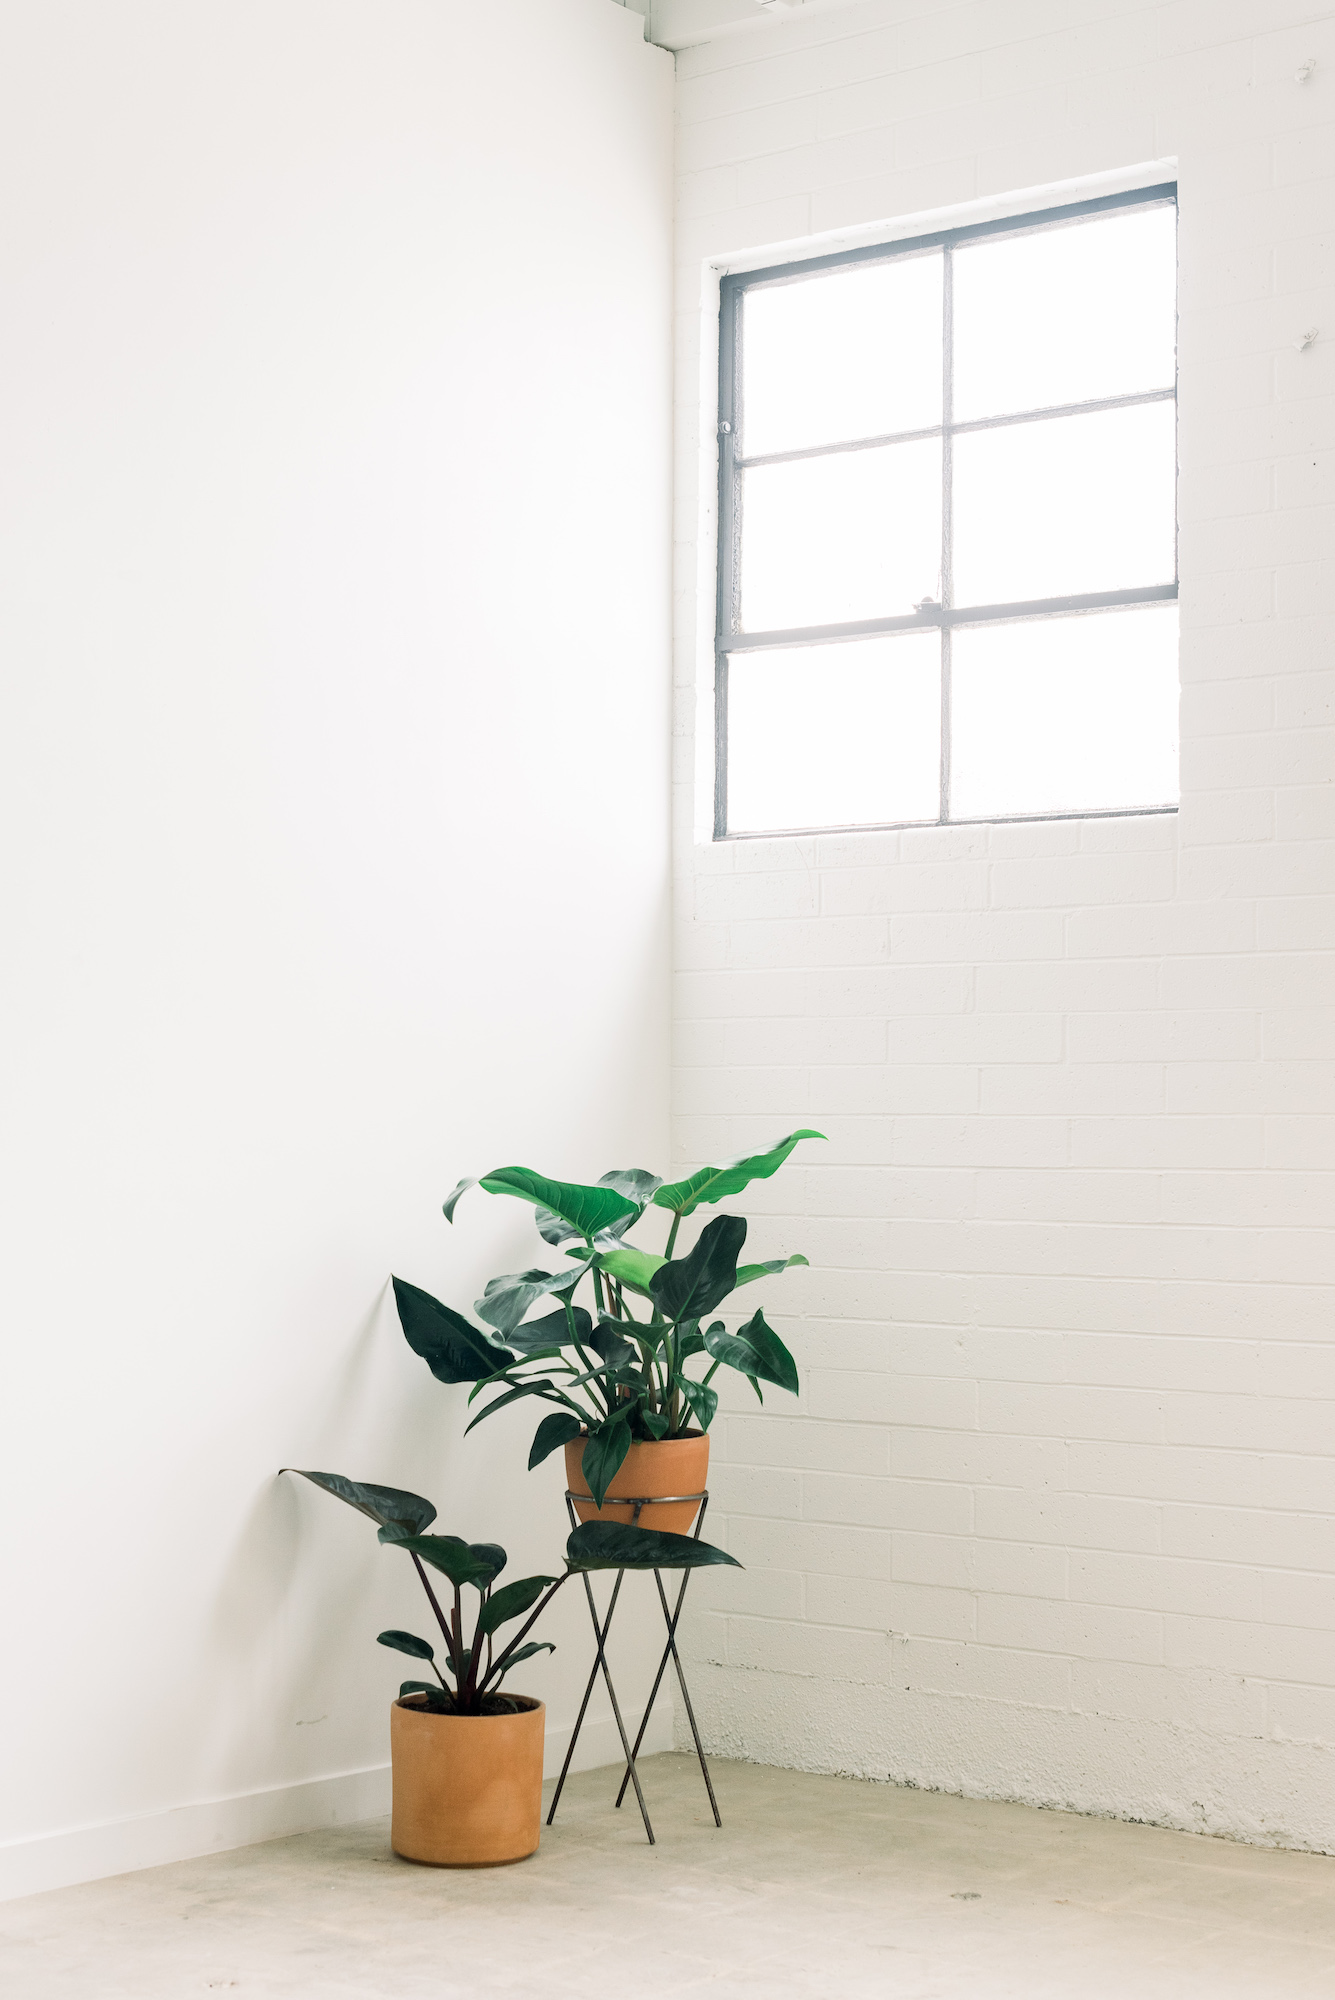 Bright Natural Light - windows everywhere let in that southern California sunshine